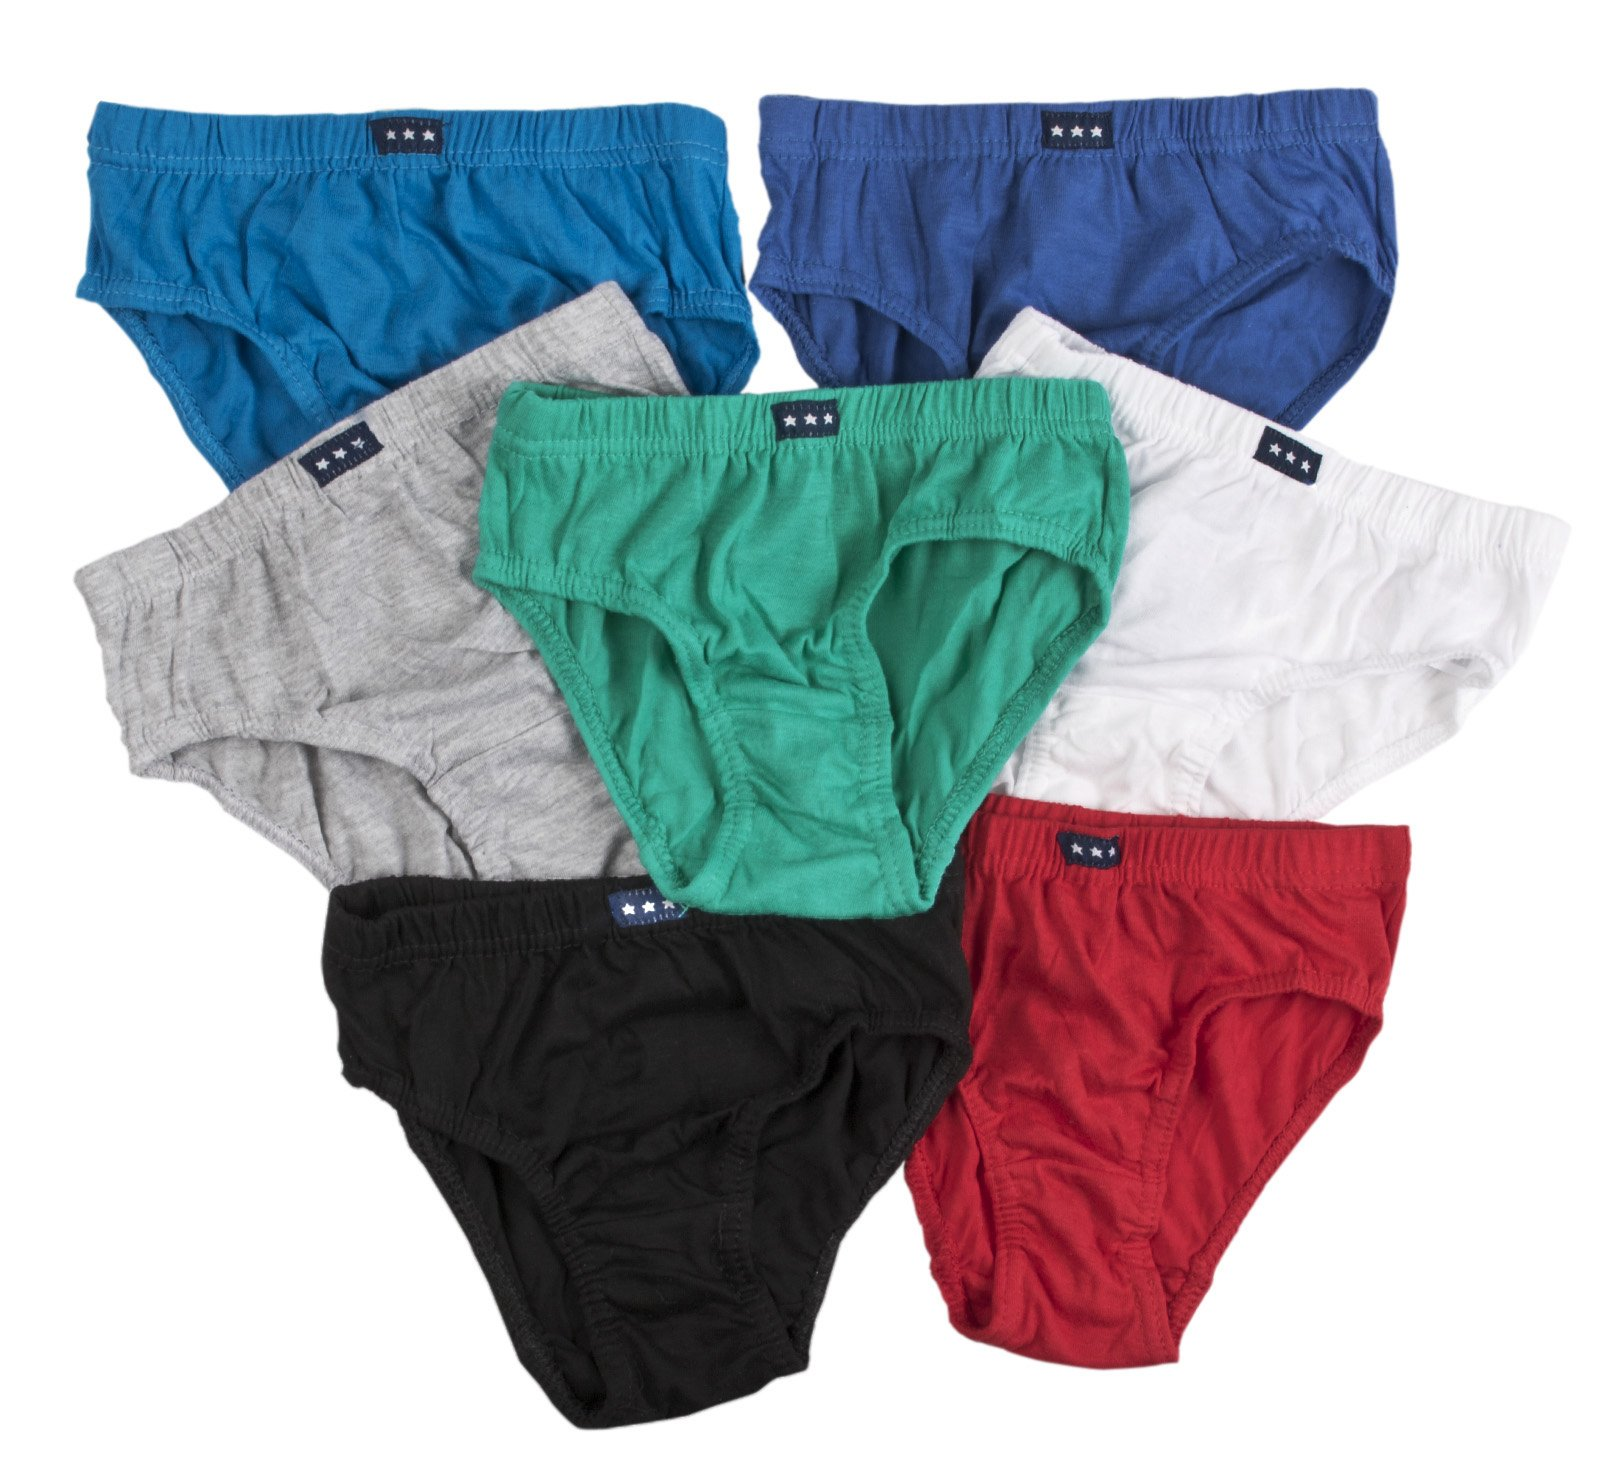 c36e2475f55 Best Rated in Boys  Underwear Briefs   Helpful Customer Reviews ...